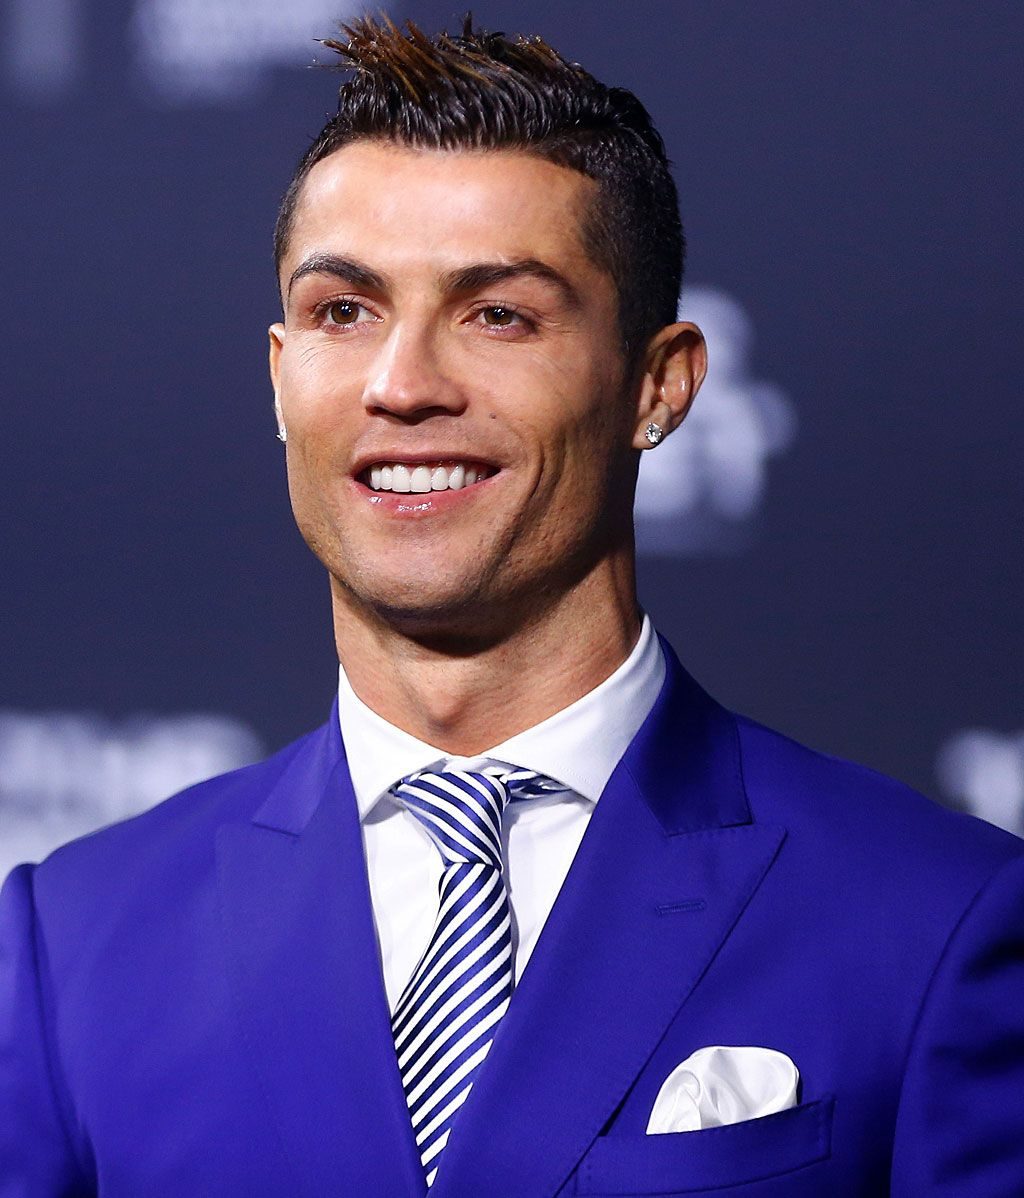 crisanto ronaldo Find great deals on ebay for cristiano ronaldo and cristiano ronaldo jersey shop with confidence.